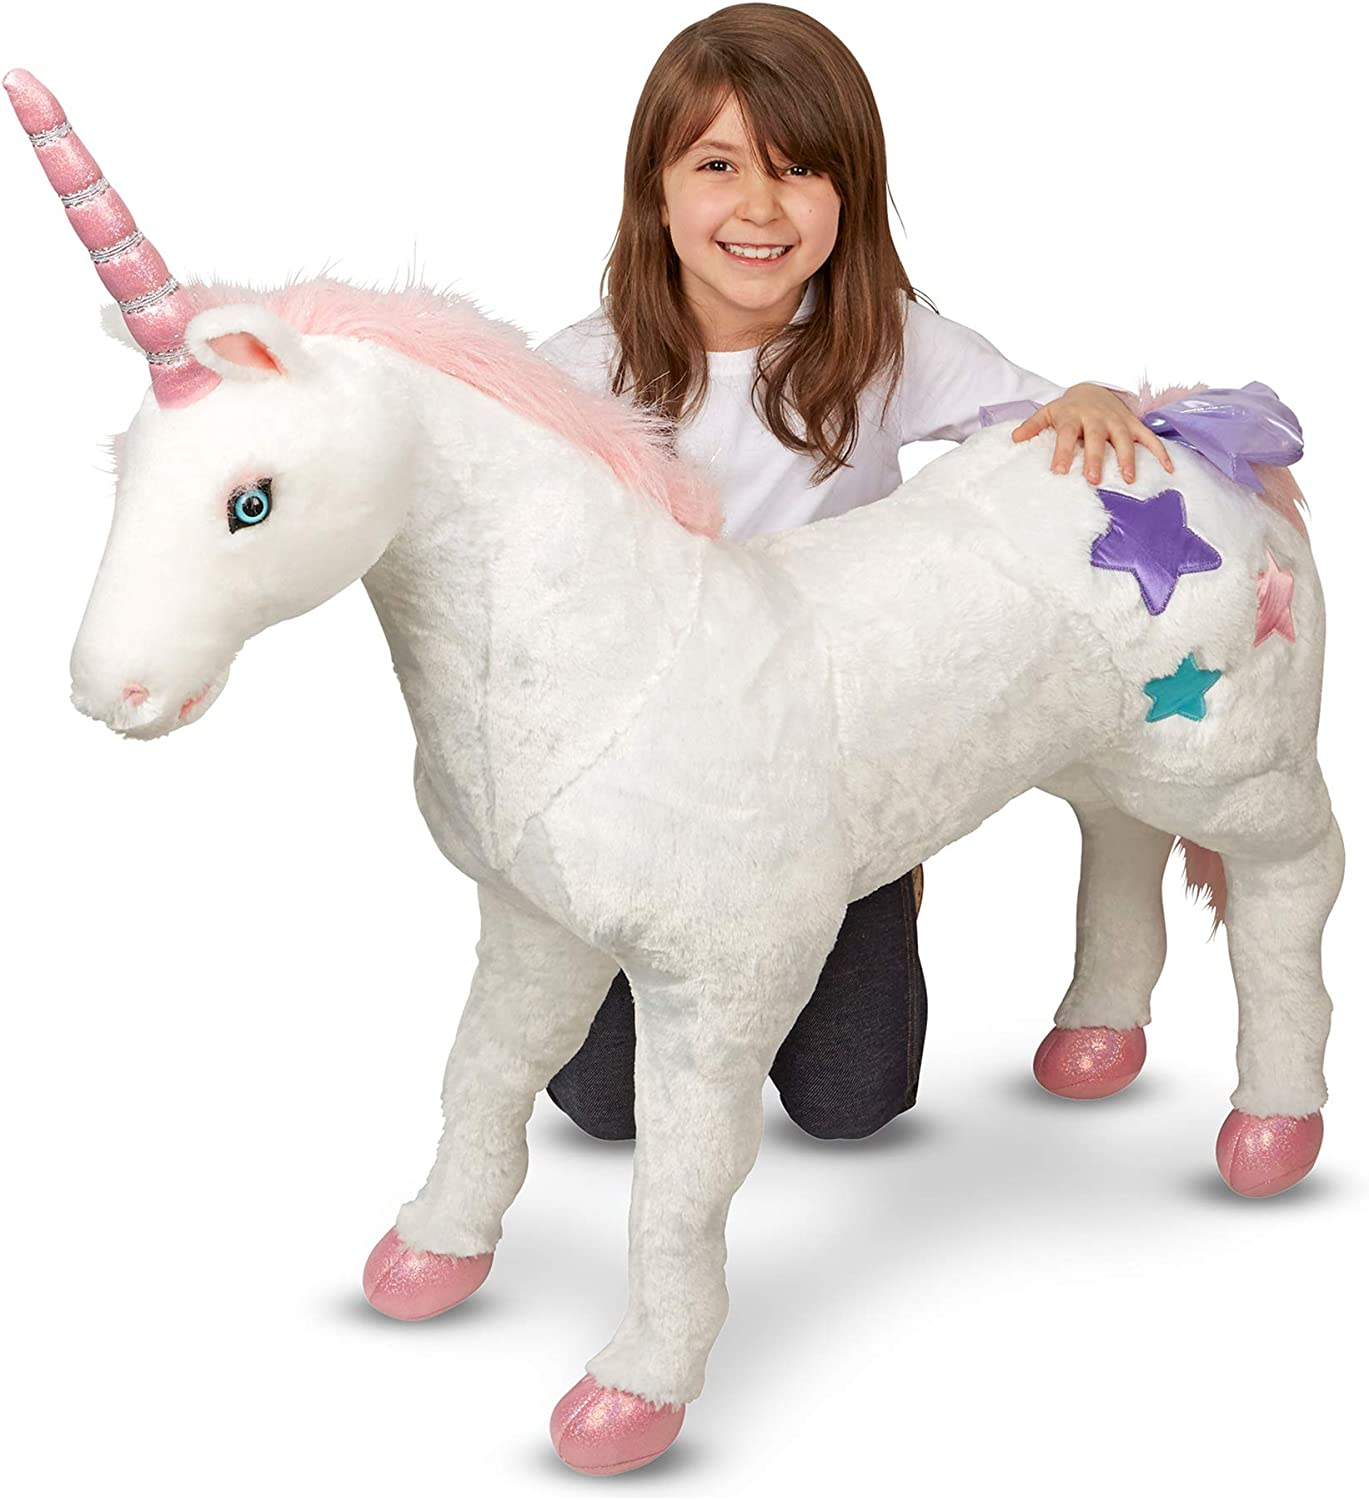 Top 15 Best Unicorn Toys And Gift For Girls in 2020 7